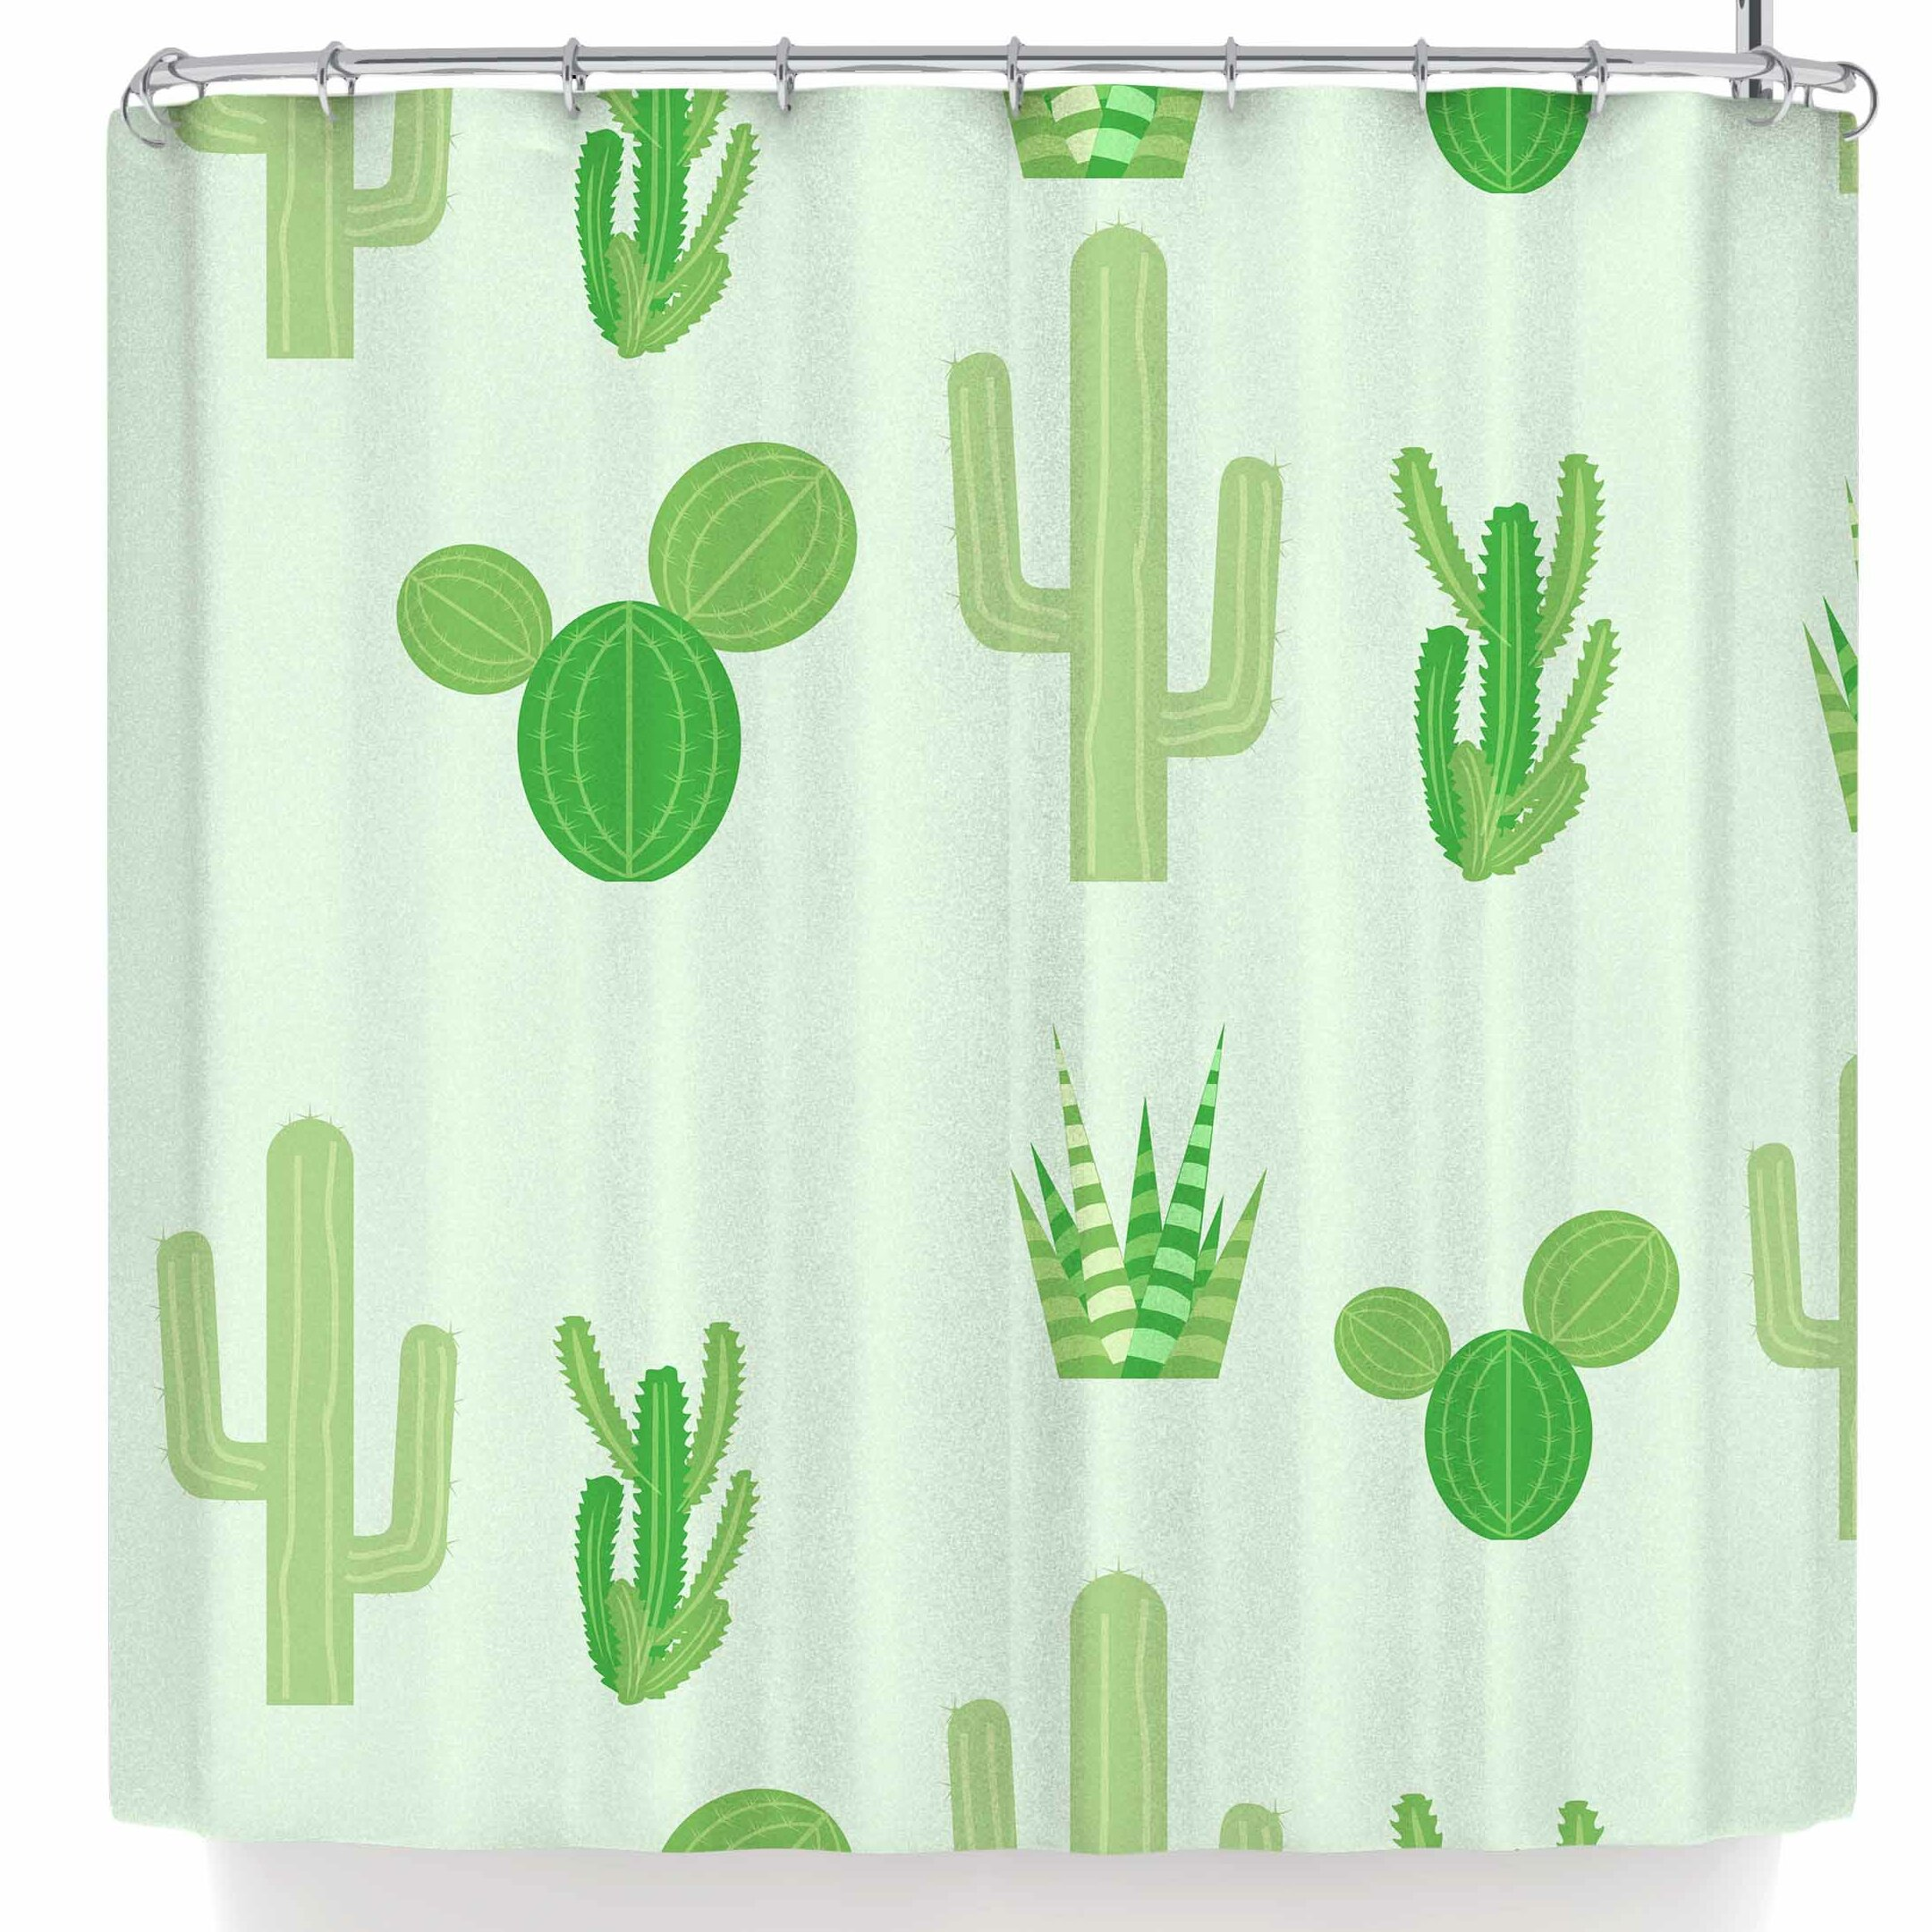 East Urban Home Famenxt Prickly Mint Cactus Shower Curtain